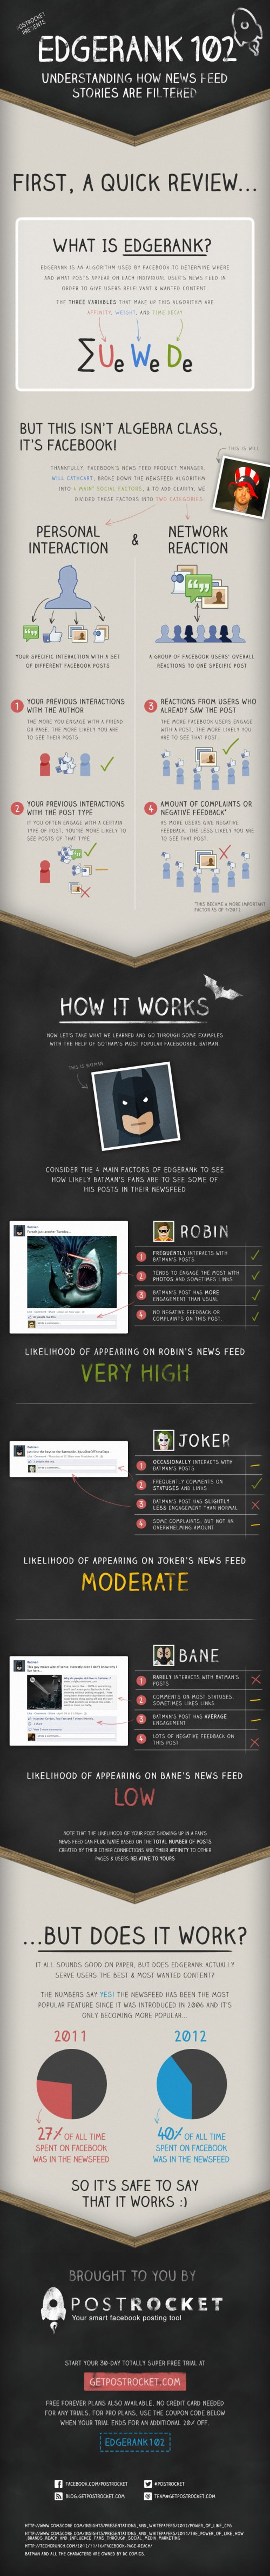 facebook-edgerank-102--understanding-how-news-feed-stories-are-filtered_5176031b8acdc